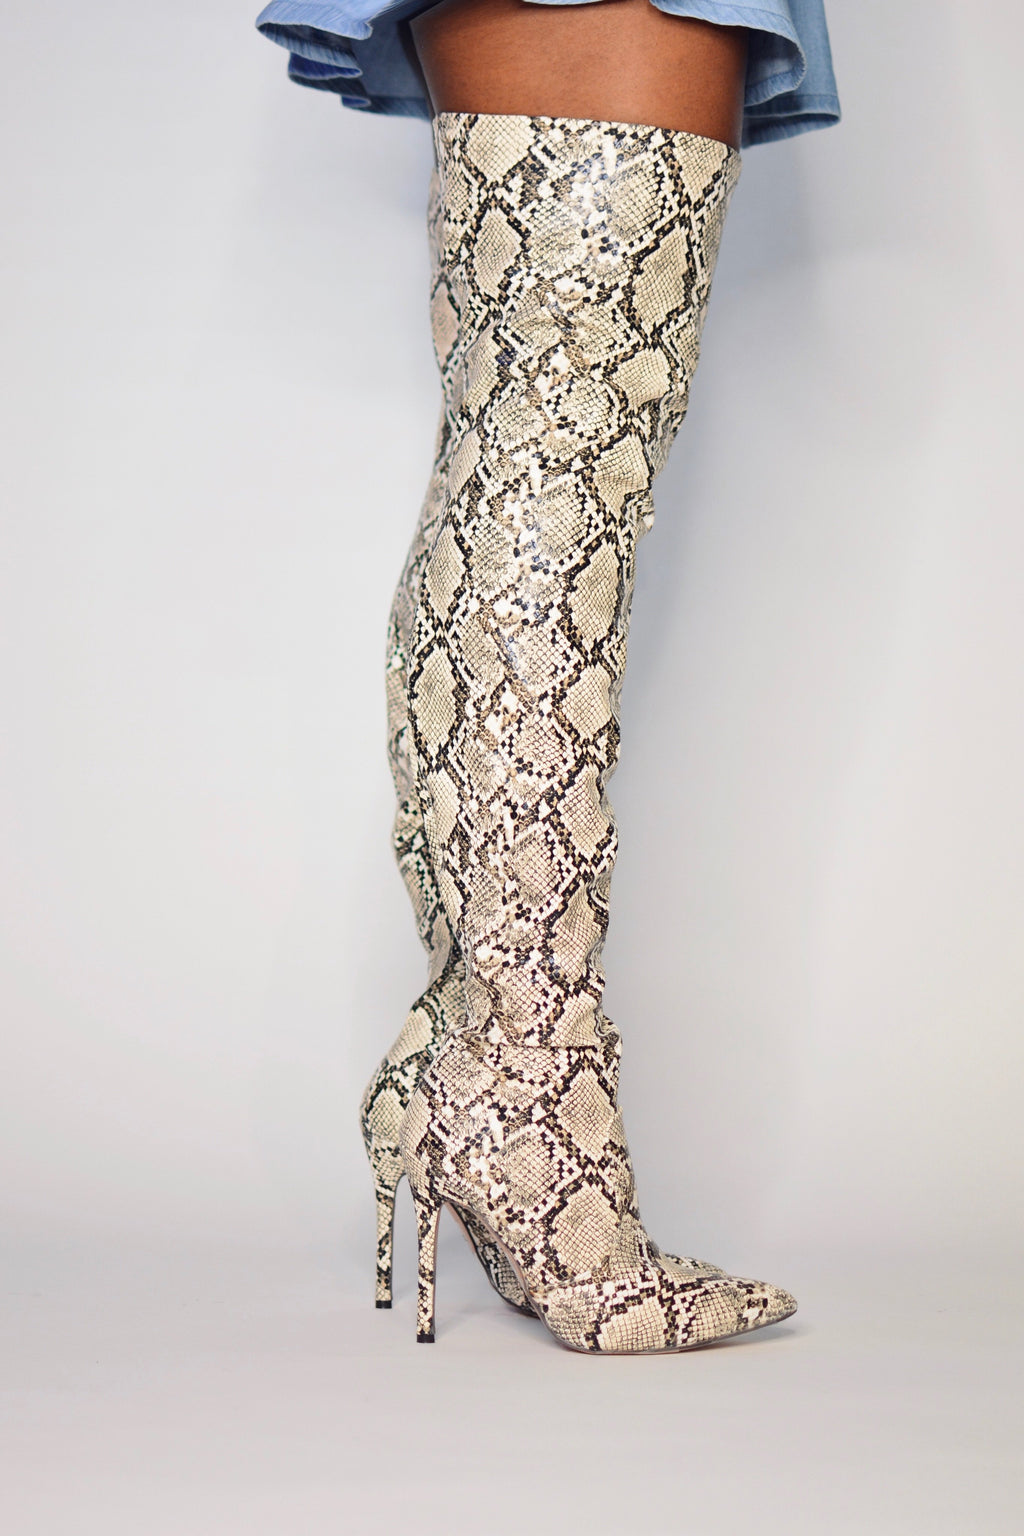 Lola | Snake Print Thigh High Boots - The Minka Collection